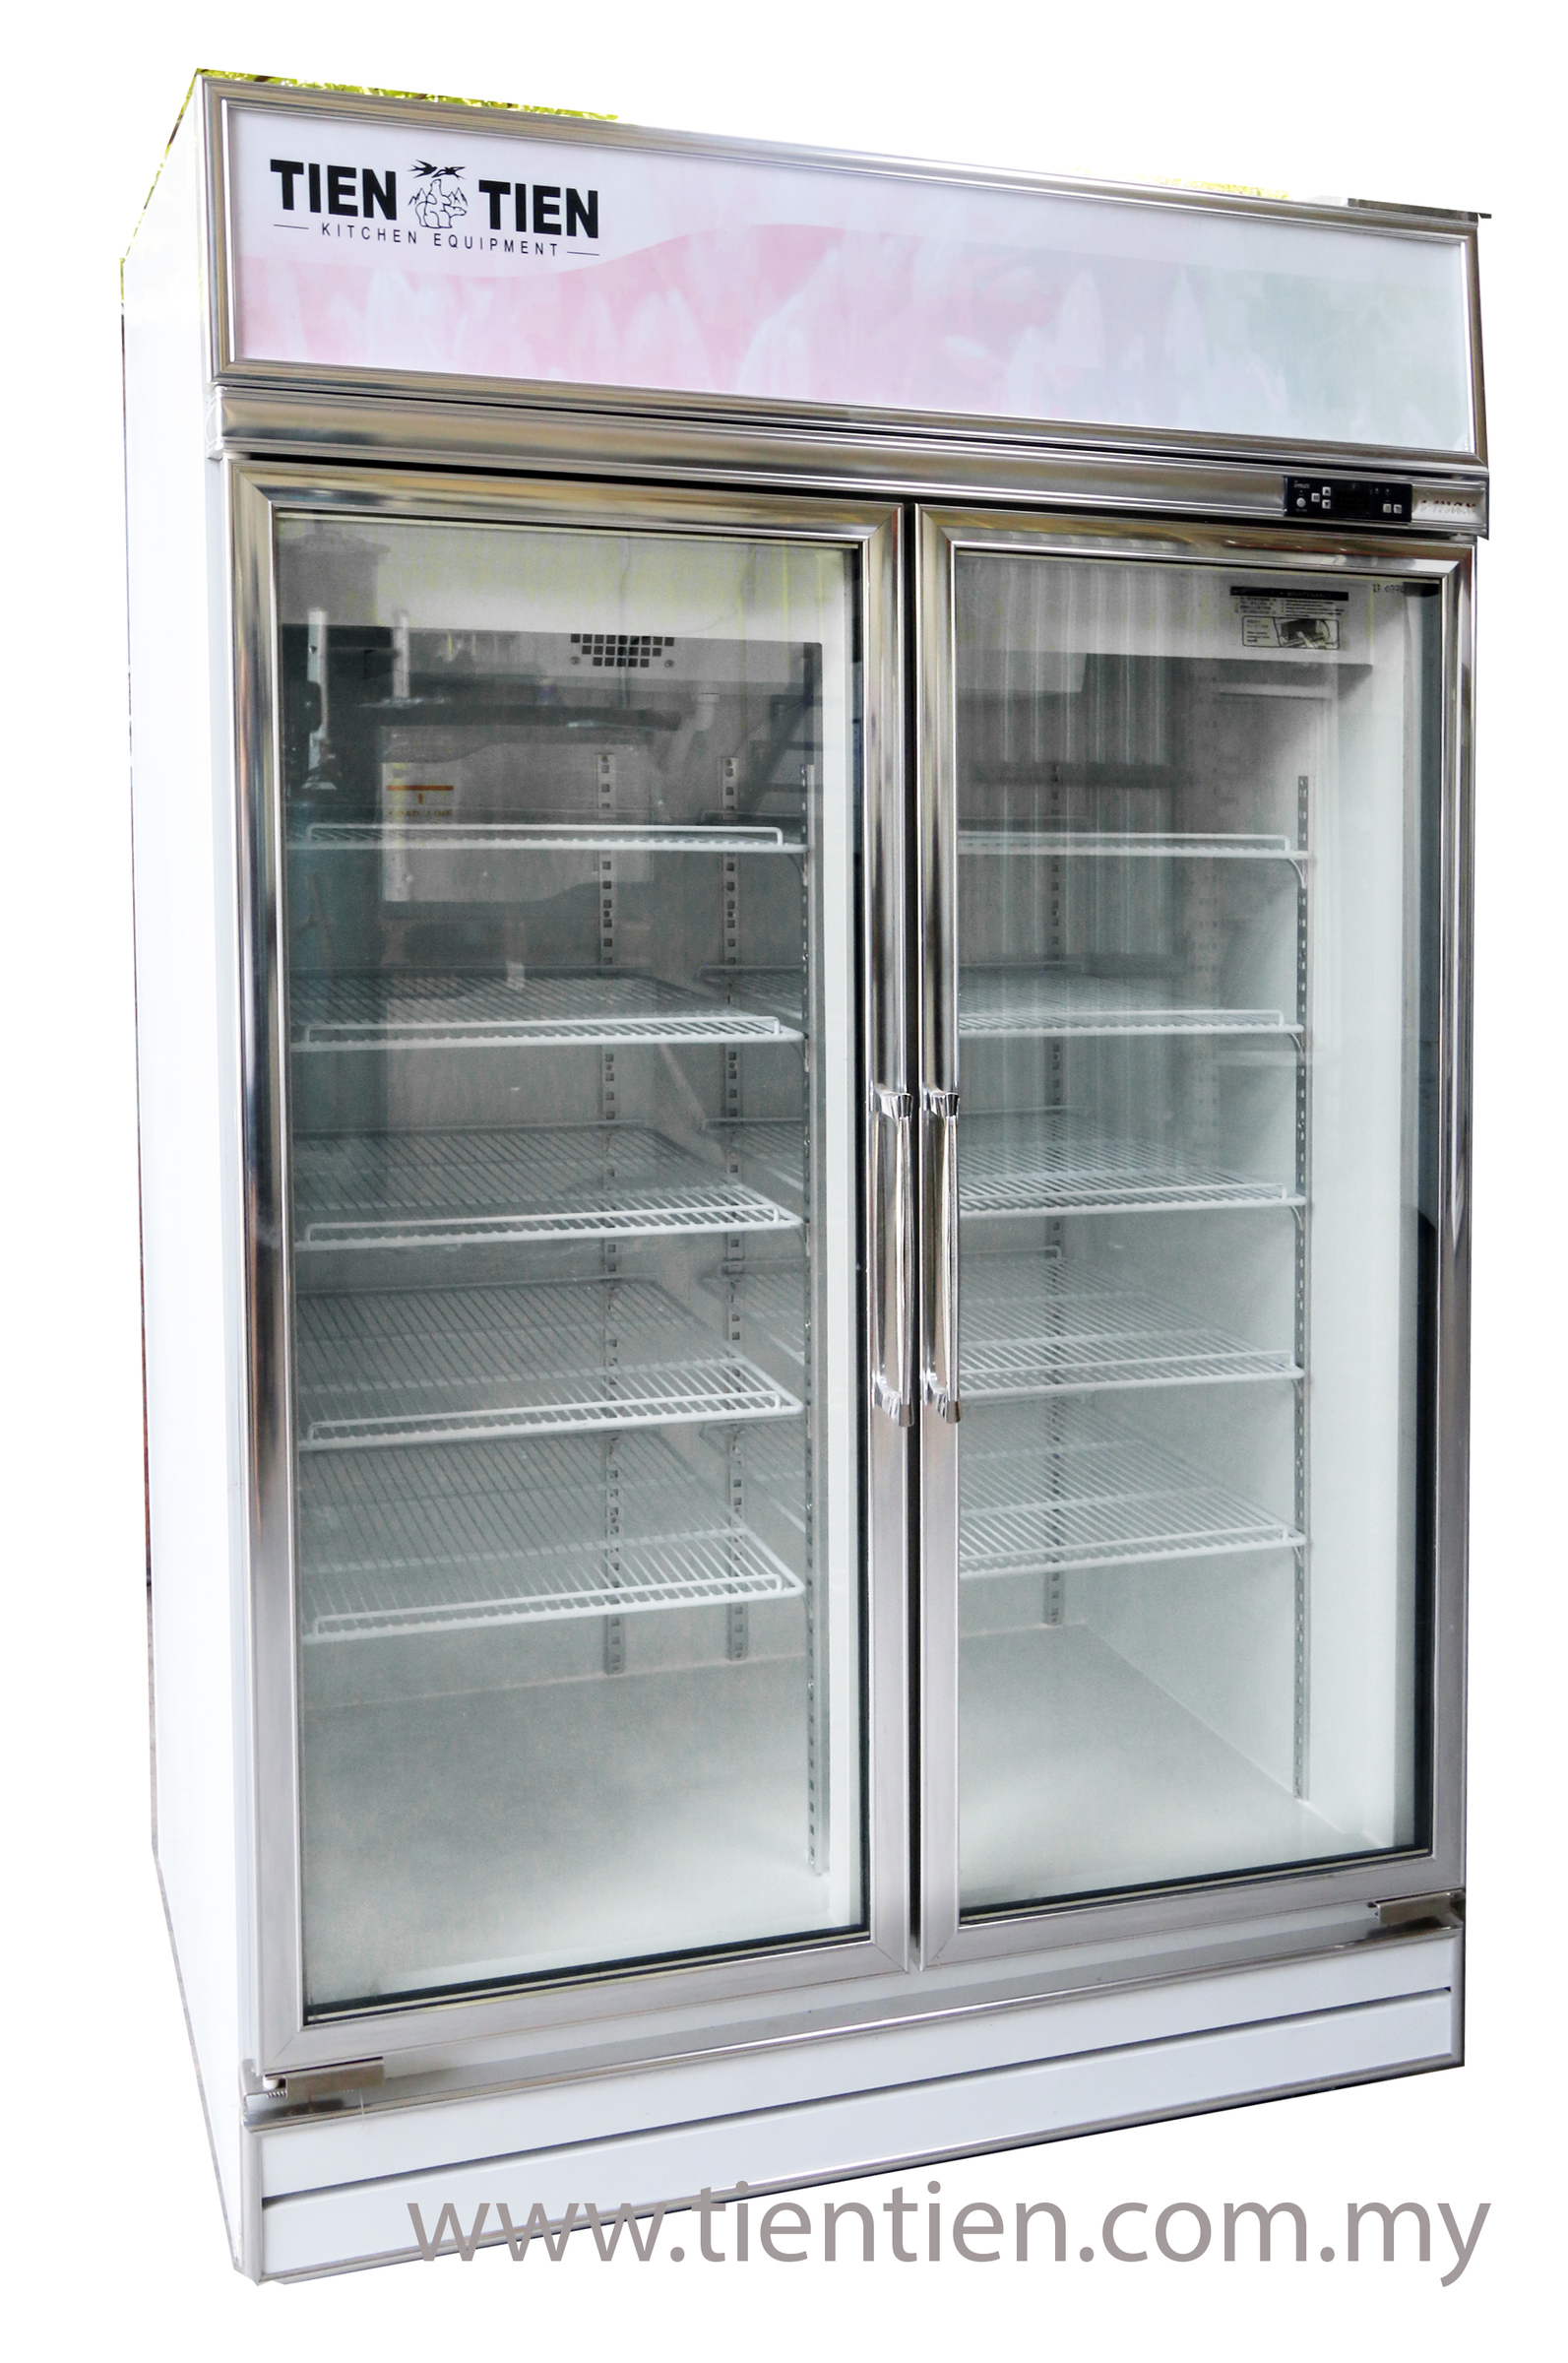 dasen-2-door-display-chiller-malaysia-tientien.jpg